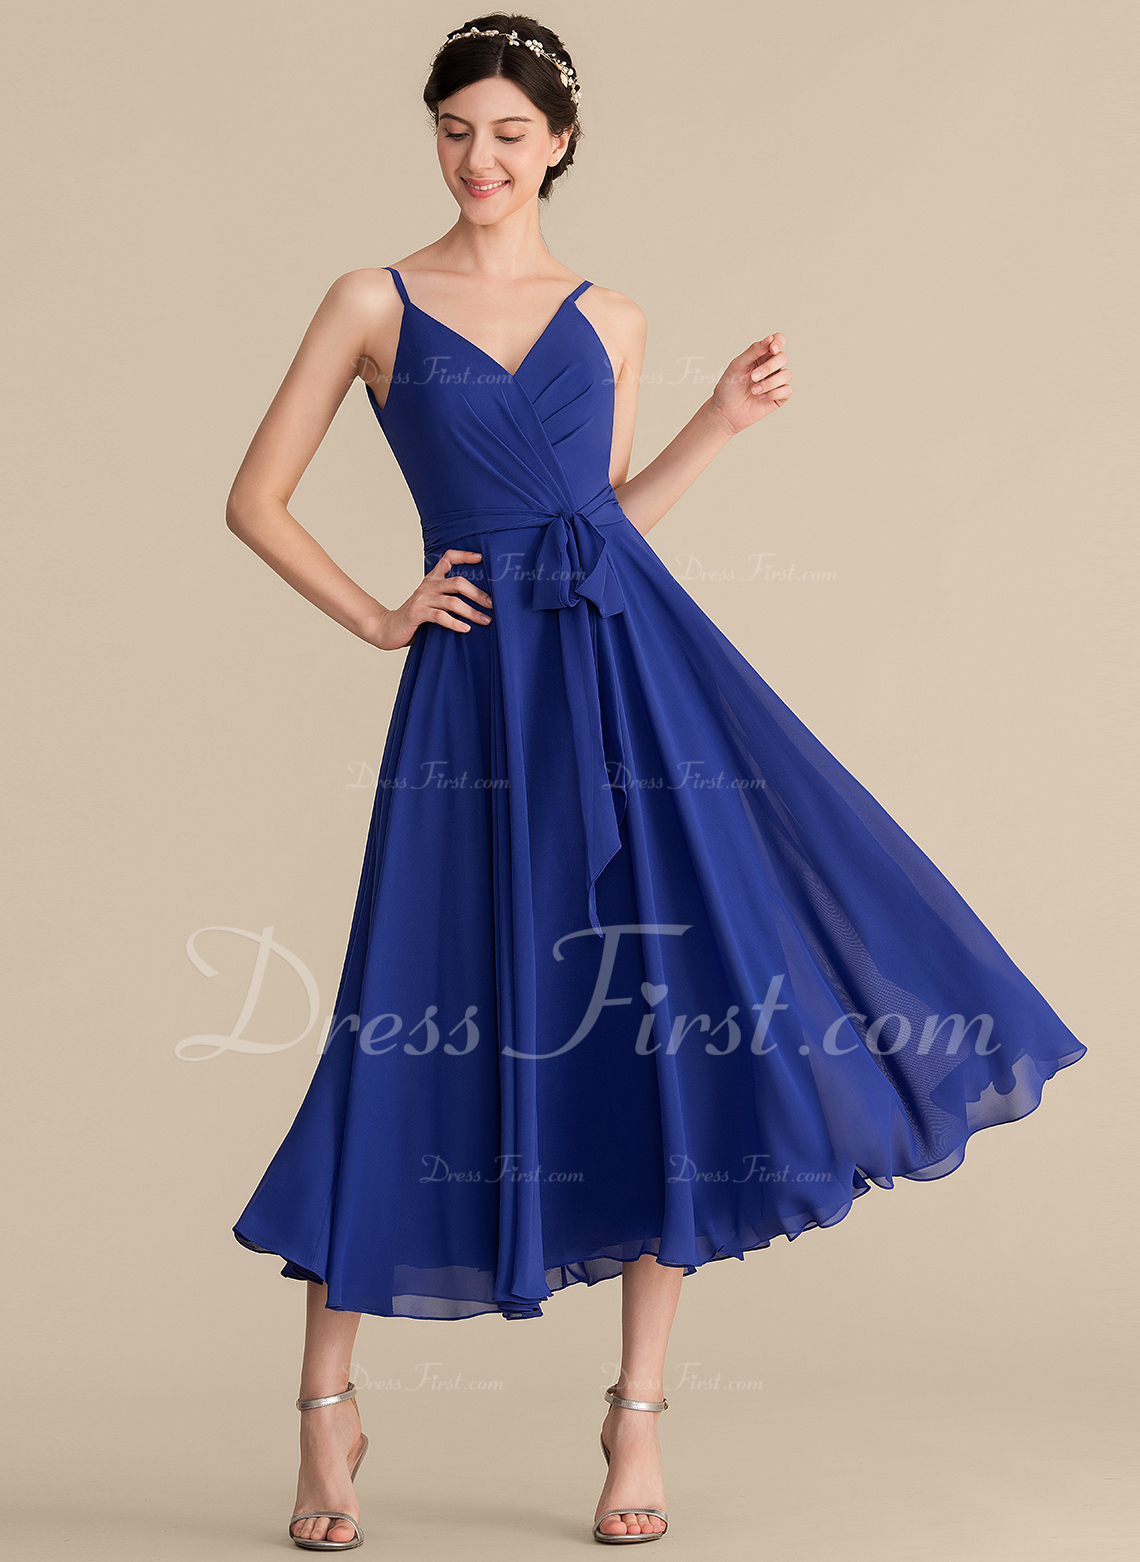 251041e3d1c Loading zoom. Loading. Color  As Picture. A-Line Princess V-neck Tea-Length  Chiffon Bridesmaid Dress With Ruffle ...